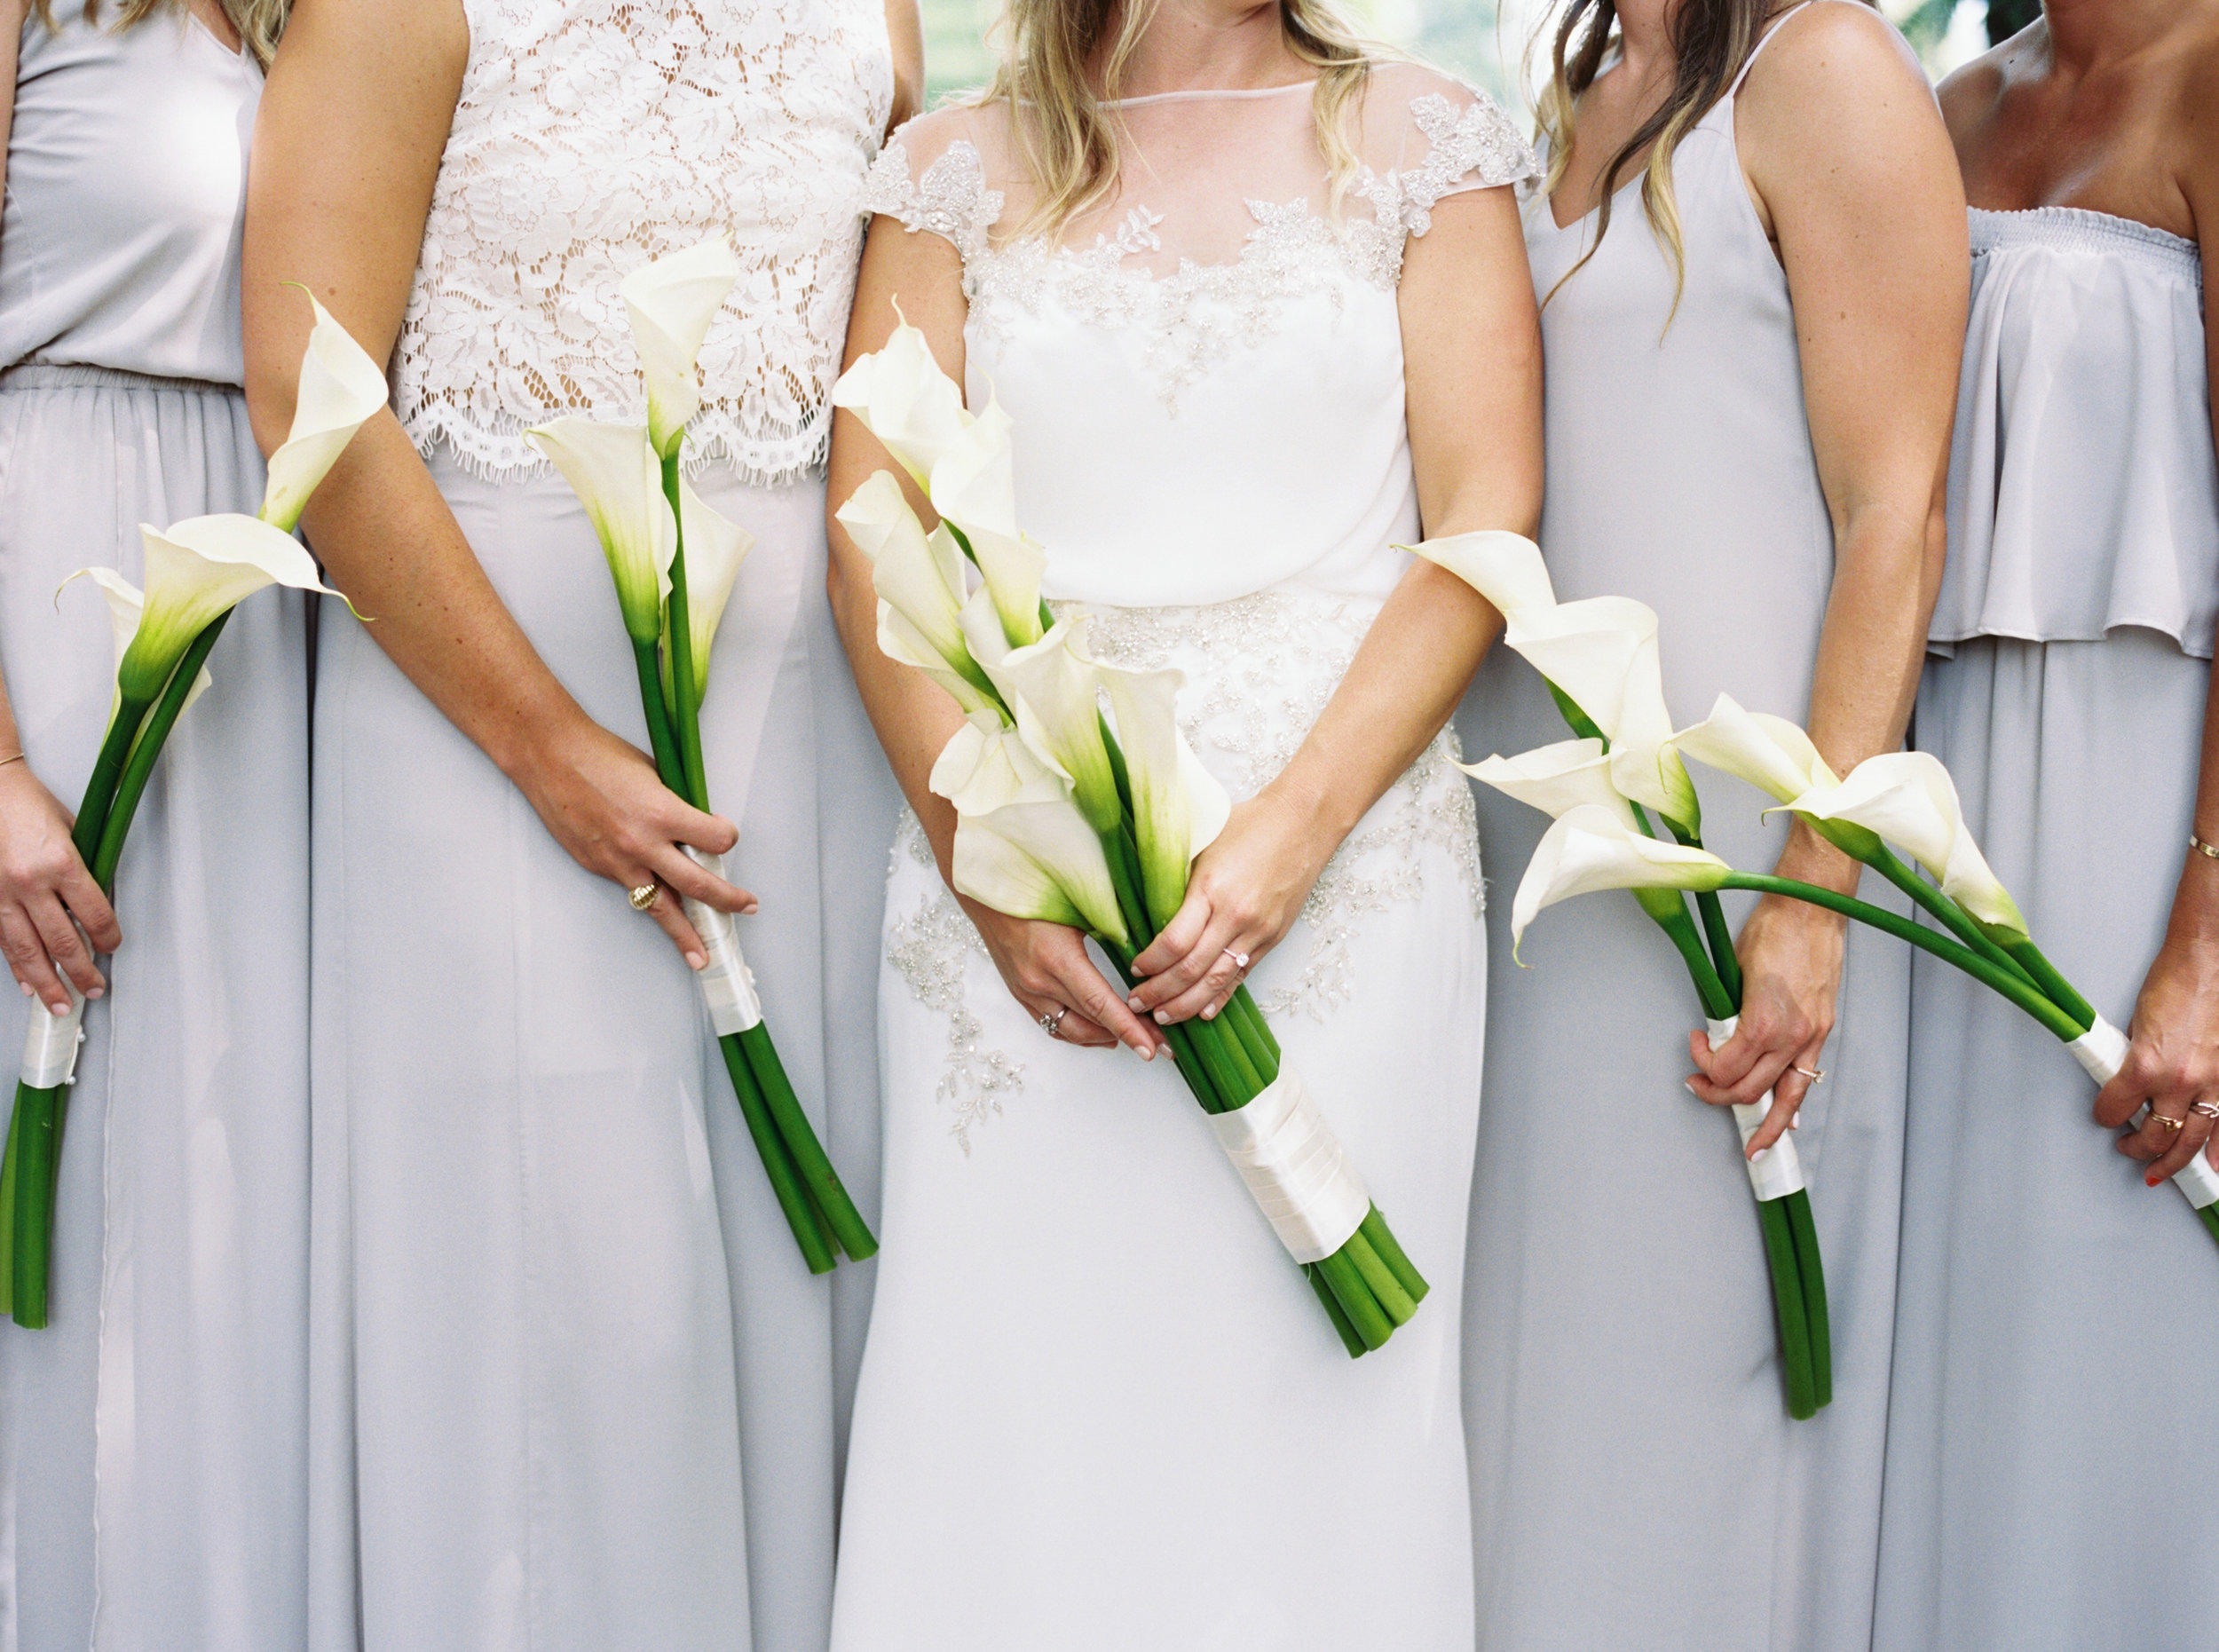 Katie_Matt_Wedding_Knoxville_Botanical_Garden_Abigail_Malone_photography-138.jpg